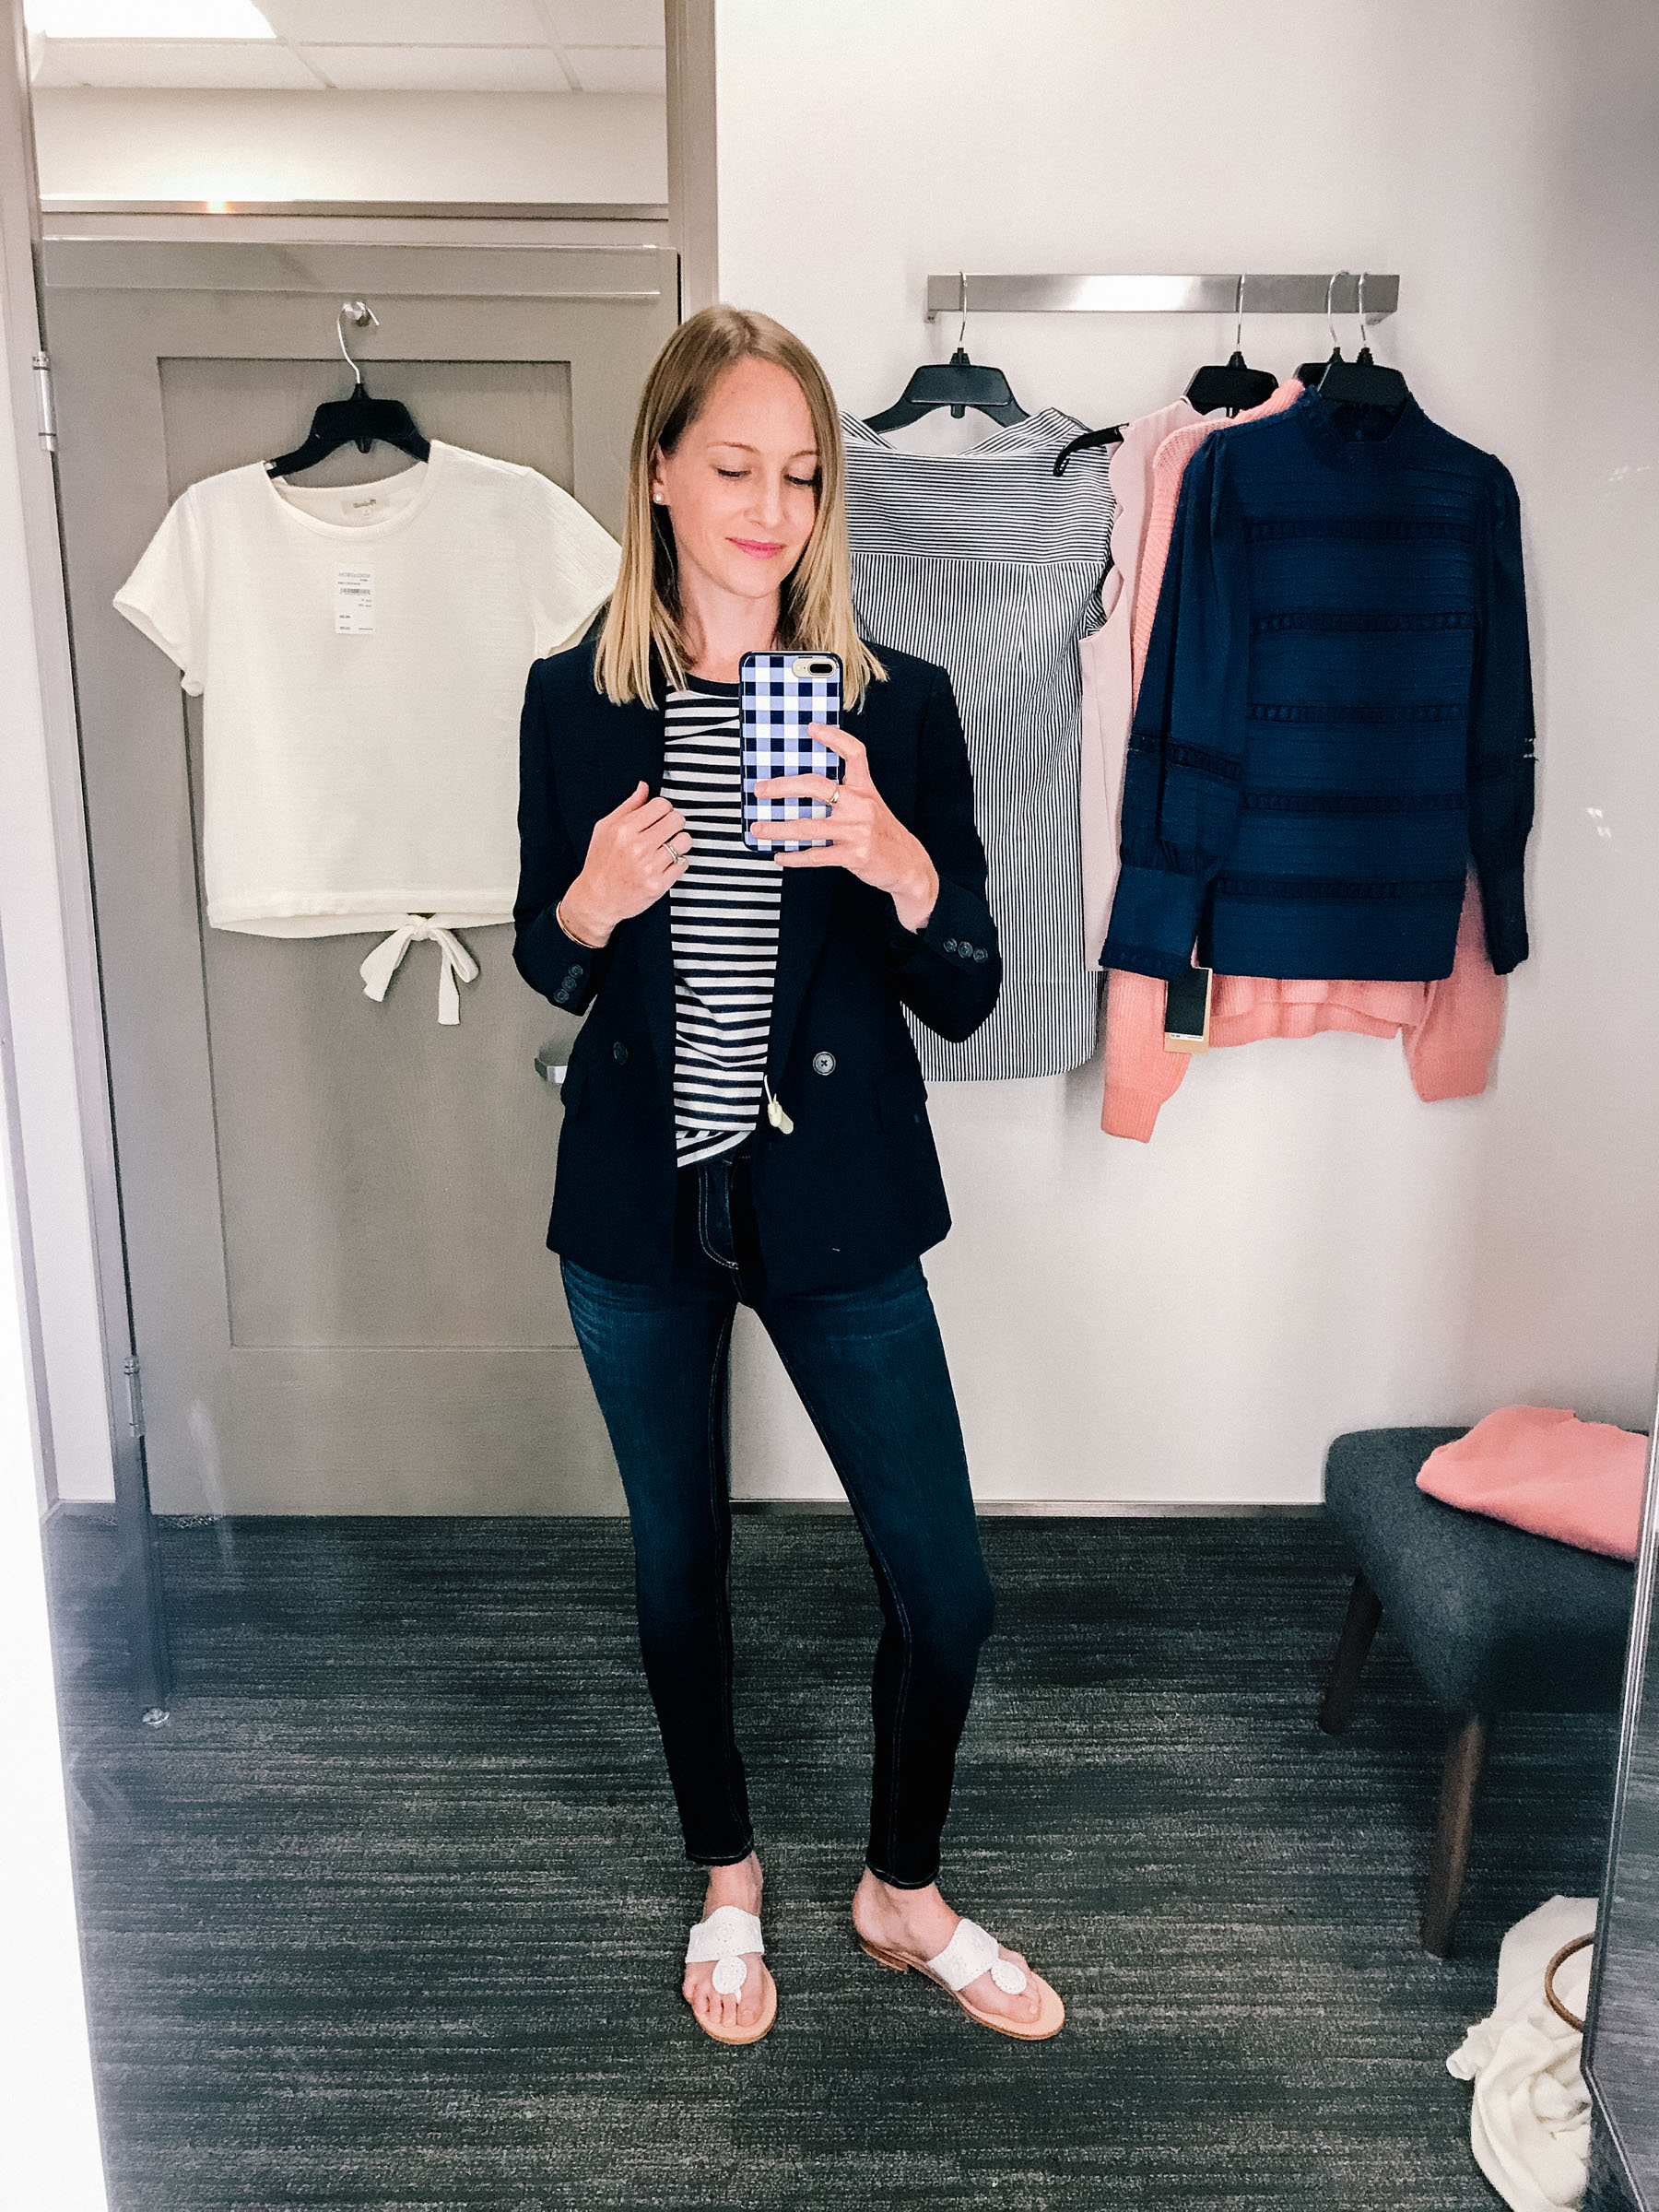 J.Crew Navy Blazer (I also recommend the Olivia Moon one! It's very cozy, since it's a knit material.) / 1901 Ringer Tee / Rag & Bone Skinny Jeans/ Monica Vinader Friendship Bracelet / Gingham Phone Case / Jack Rogers